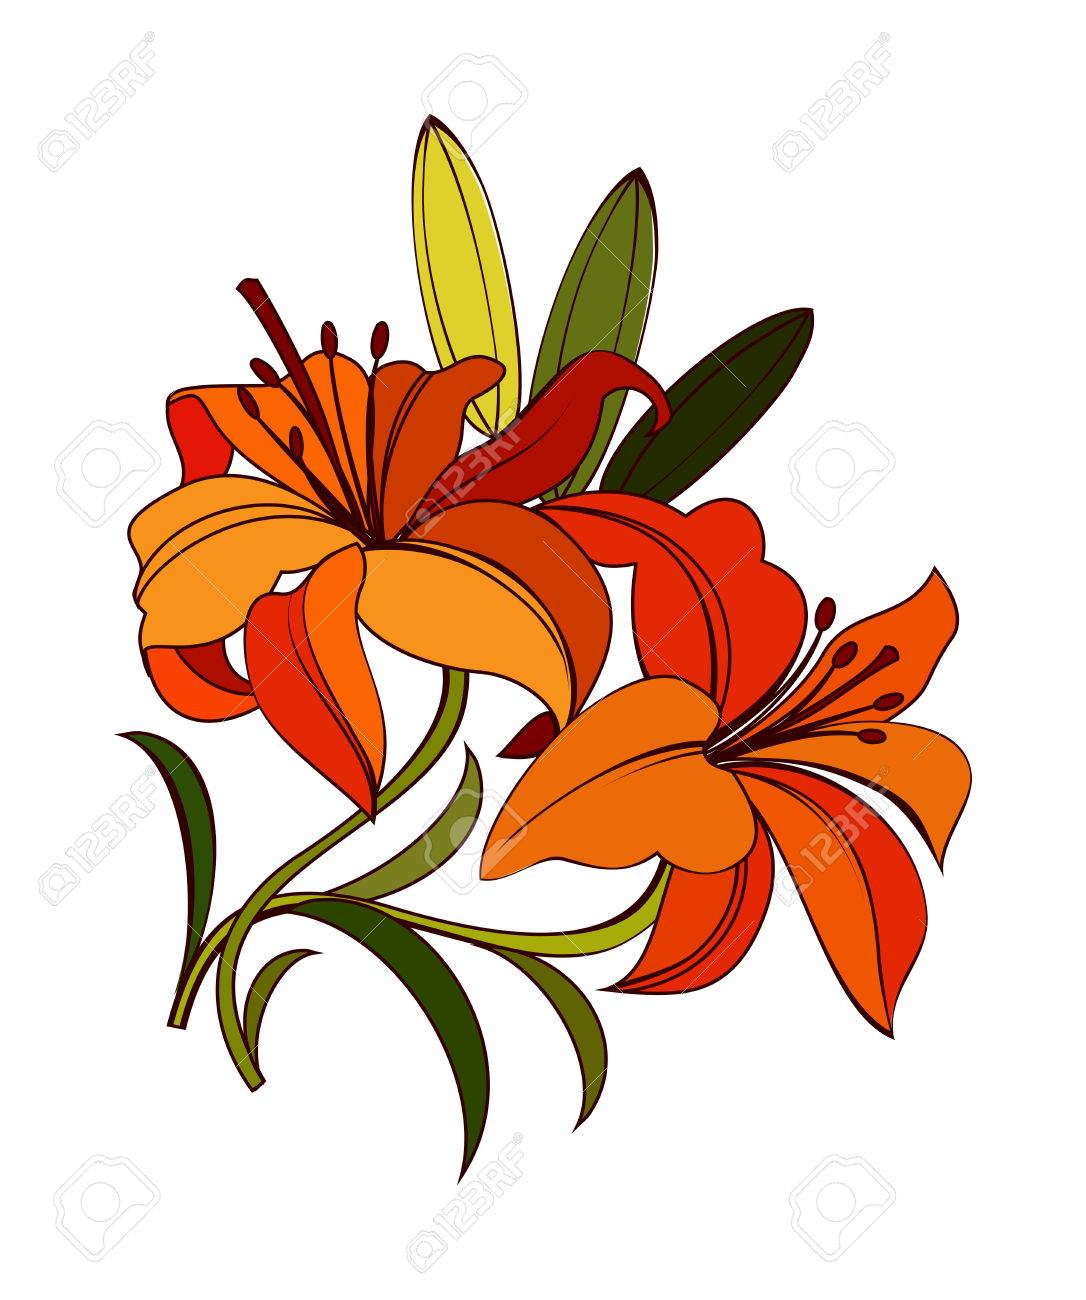 Bright Orange Scarlet Lily Flower With Green Leaves Isolated On